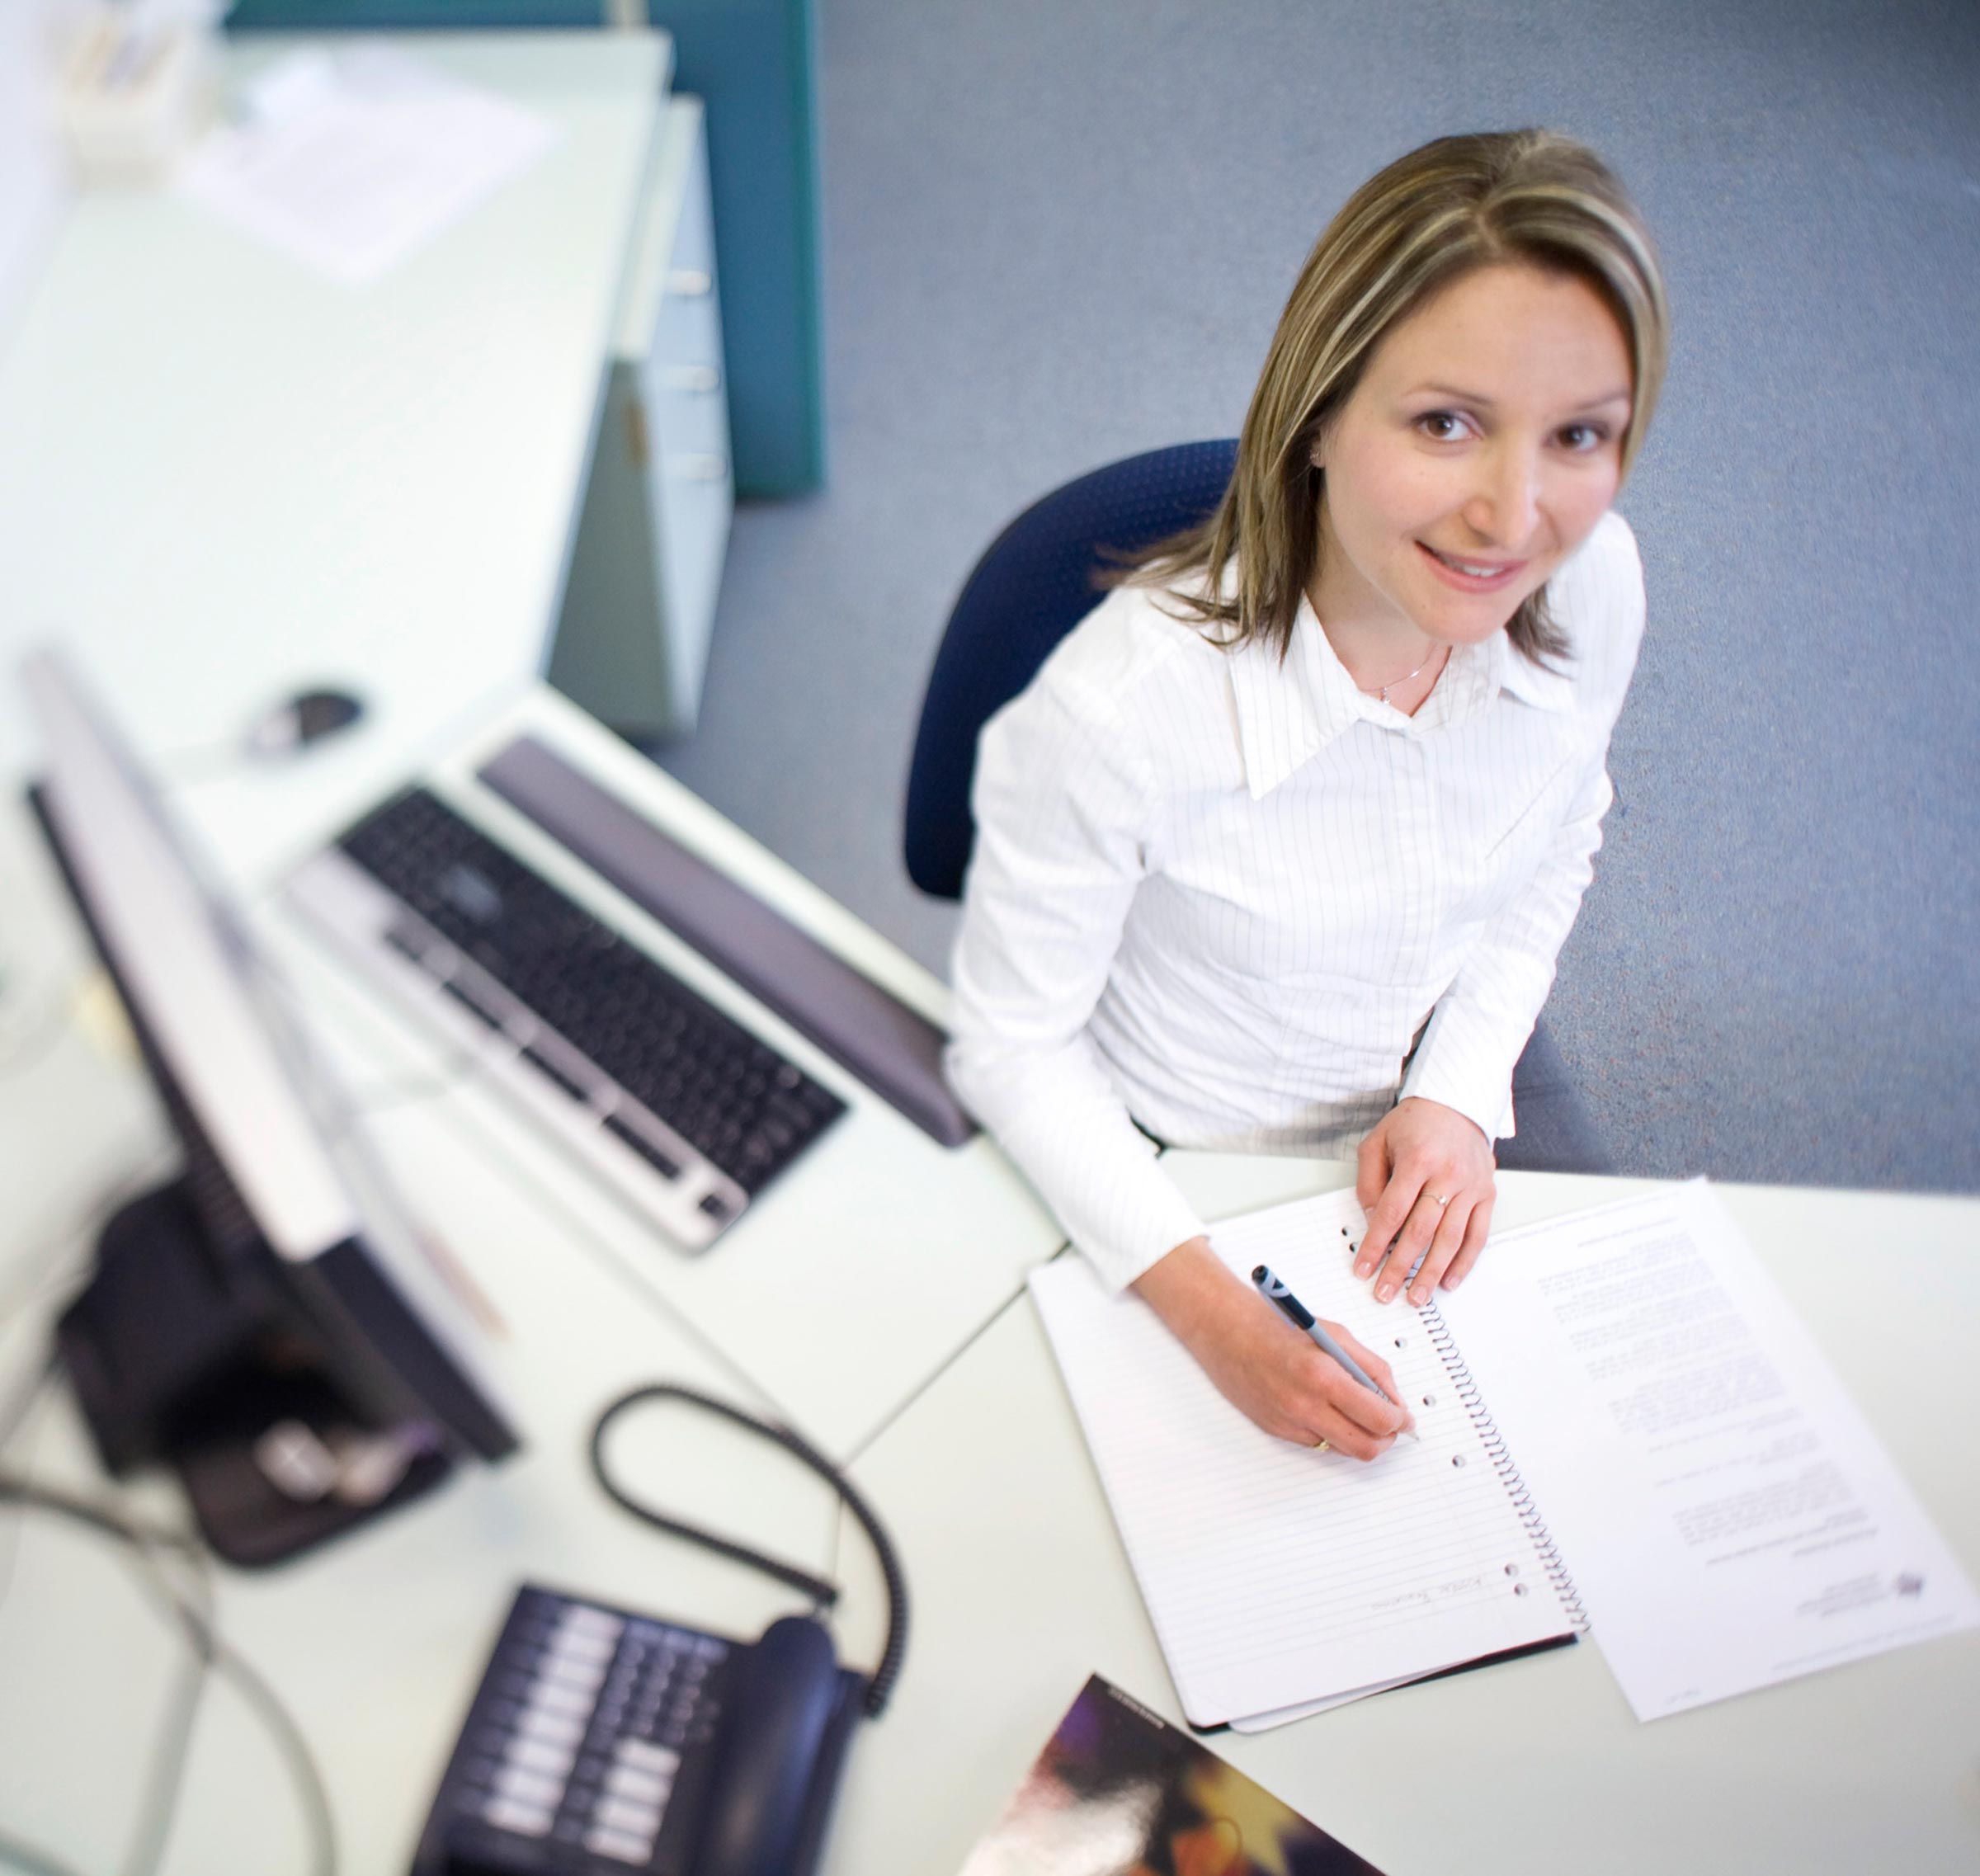 female office worker at desk writing in notebook